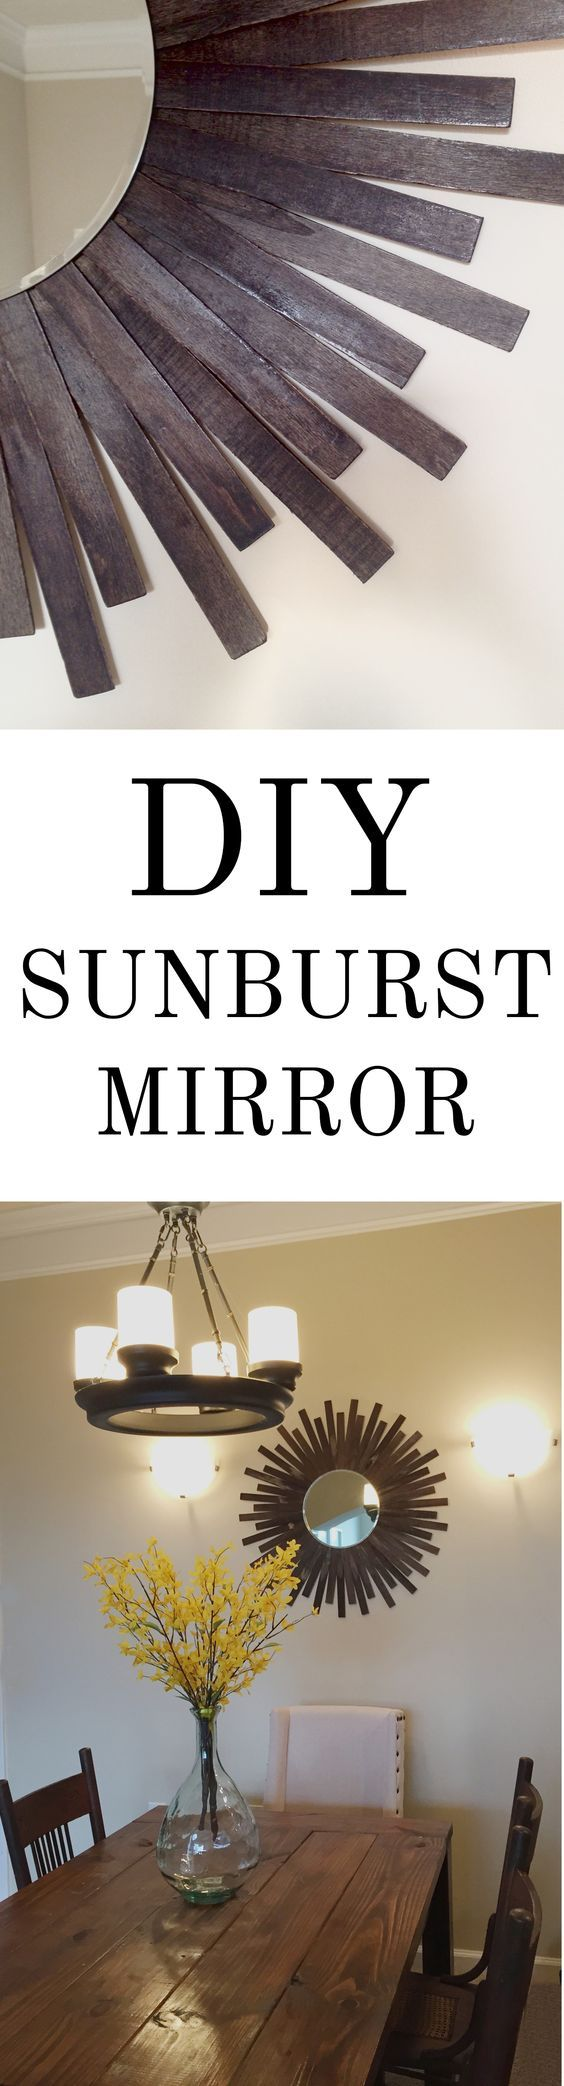 An easy + affordable #DIY sunburst mirror- made out of PAINT STIRRERS!